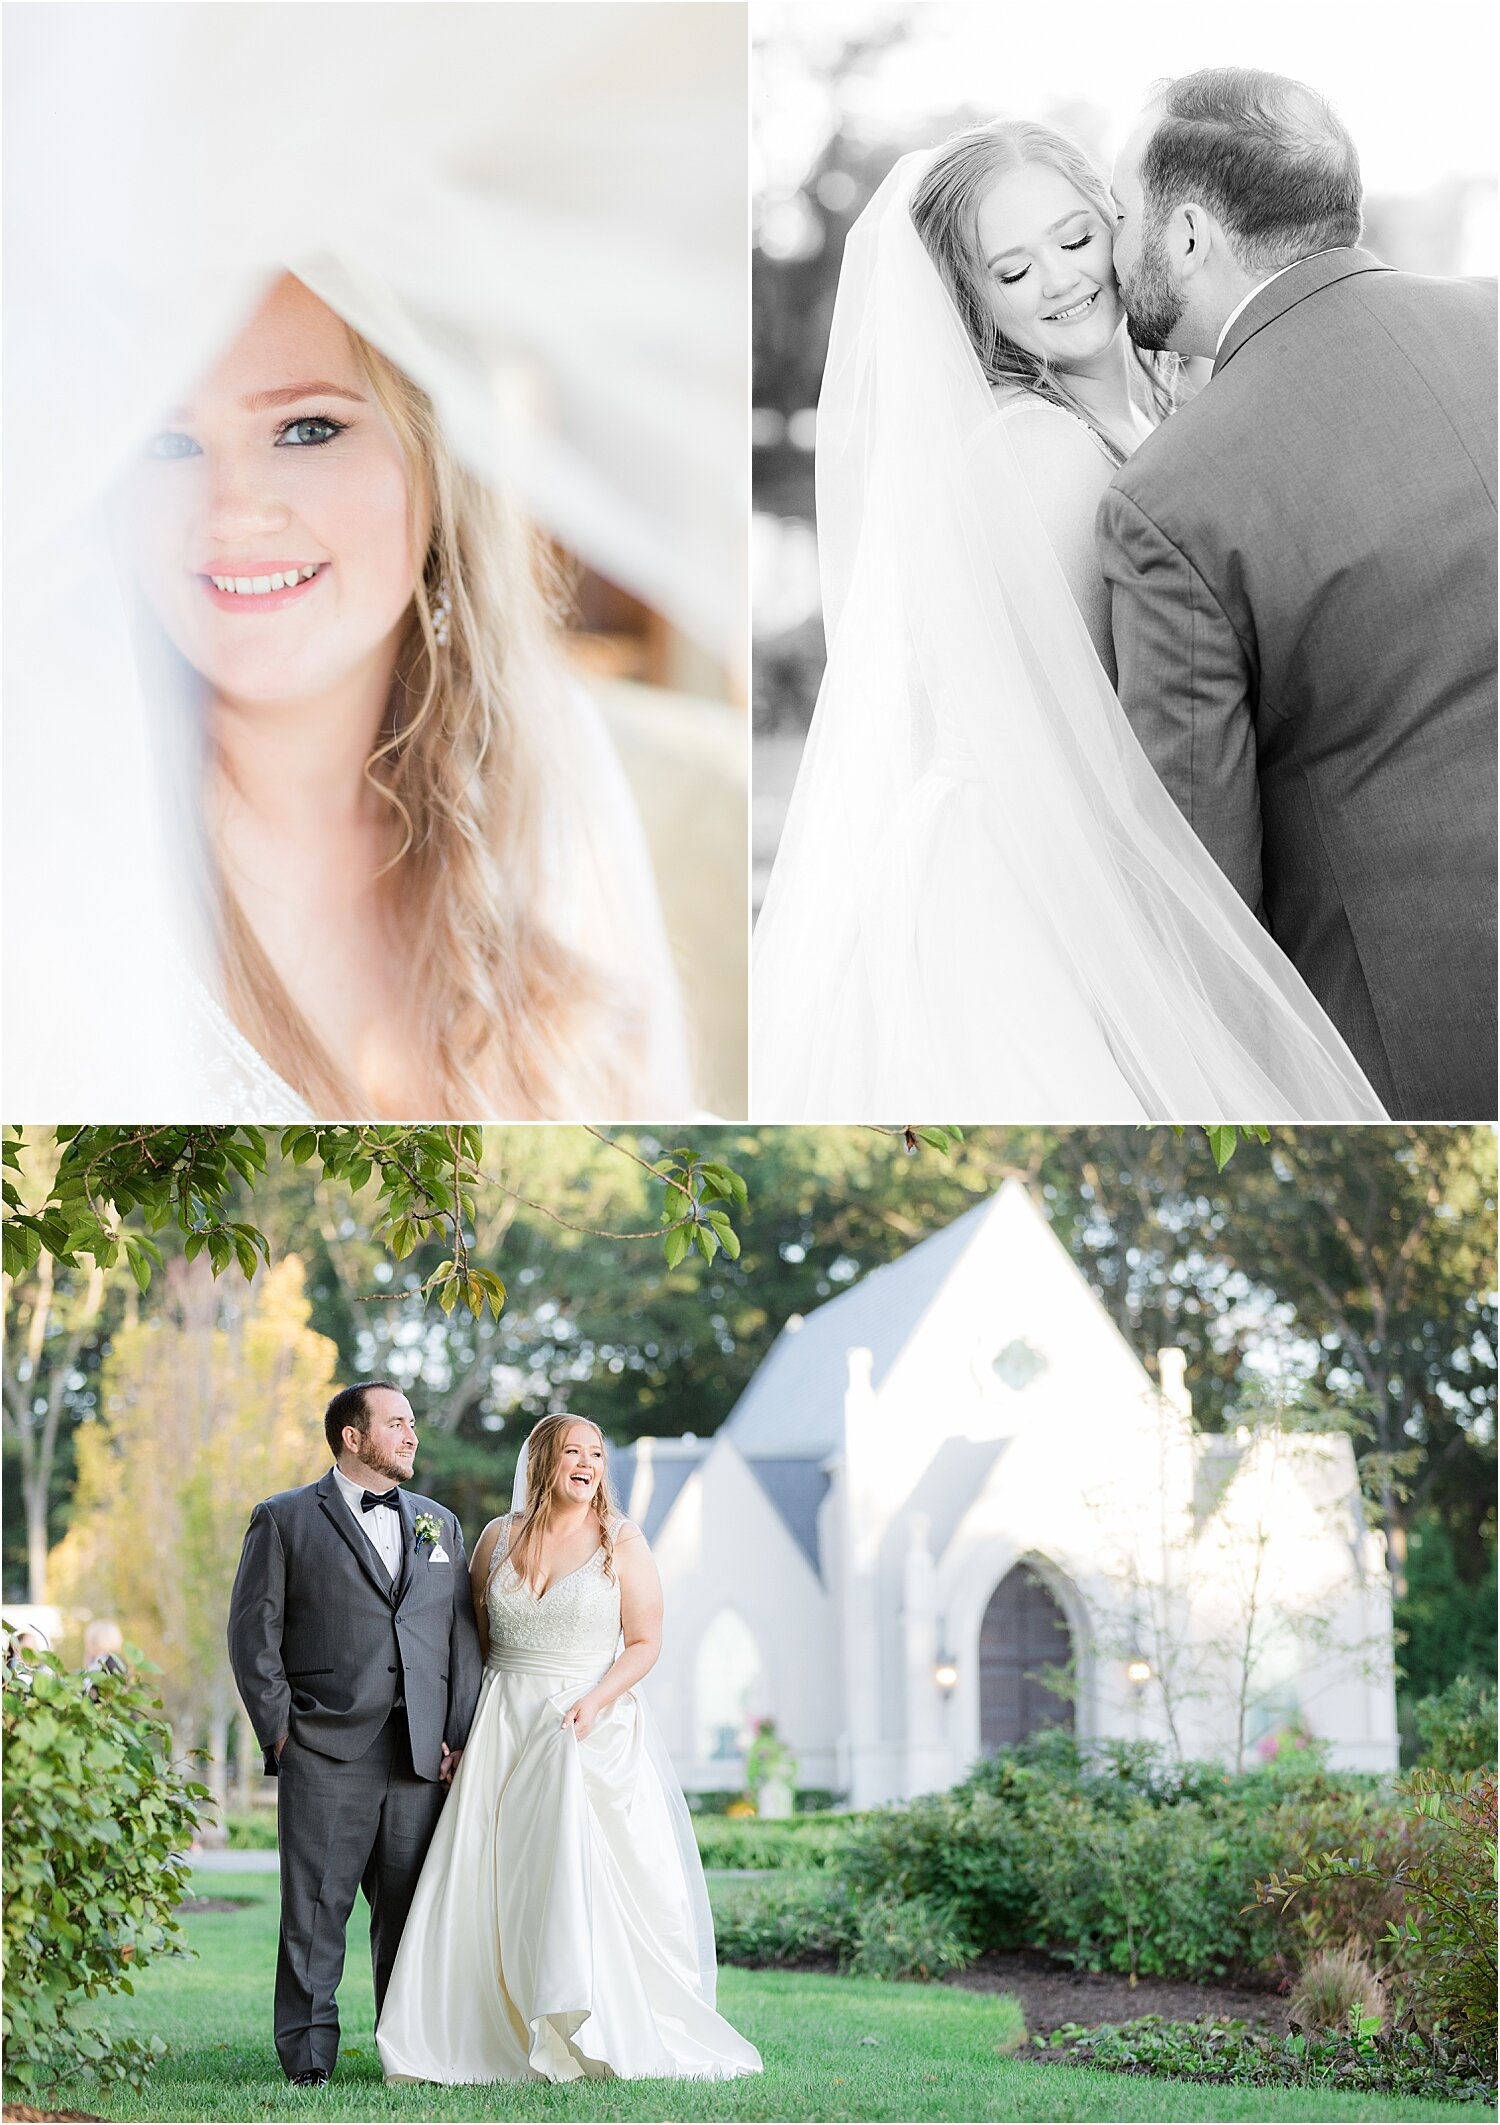 romantic bride and groom photos at park chateau